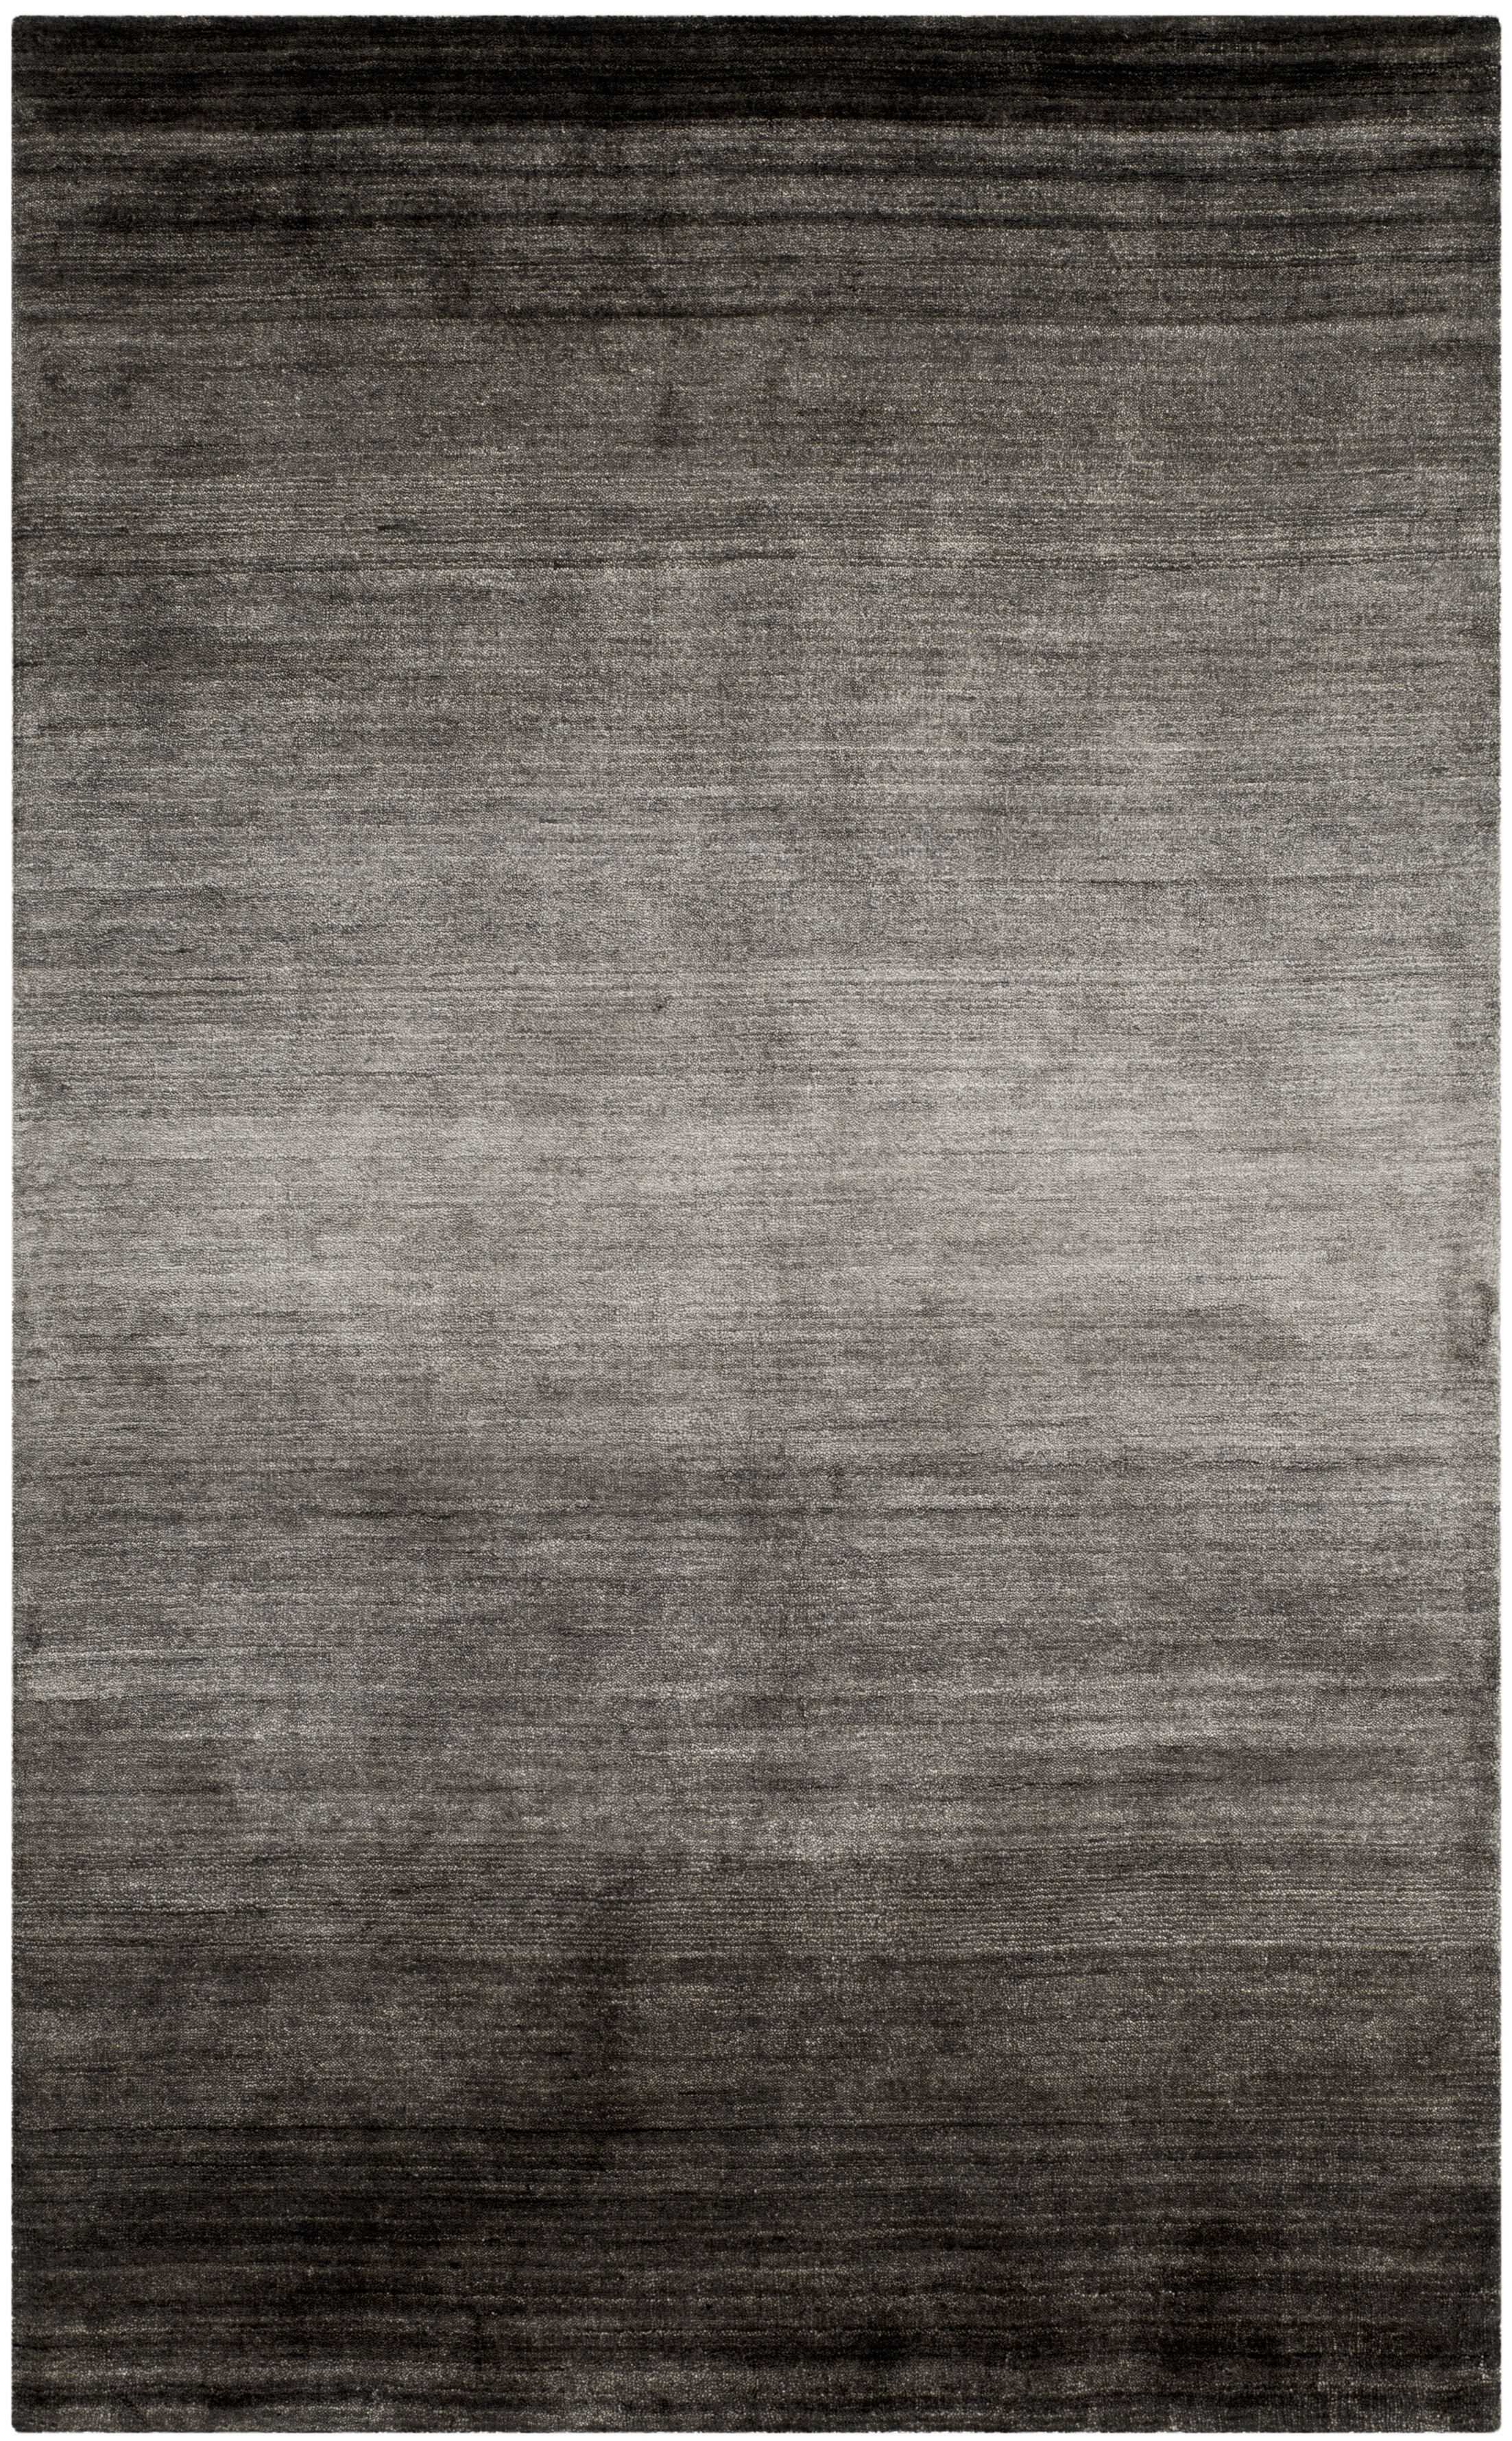 Justin Hand-Woven Black Area Rug Rug Size: Rectangle 10' x 14'